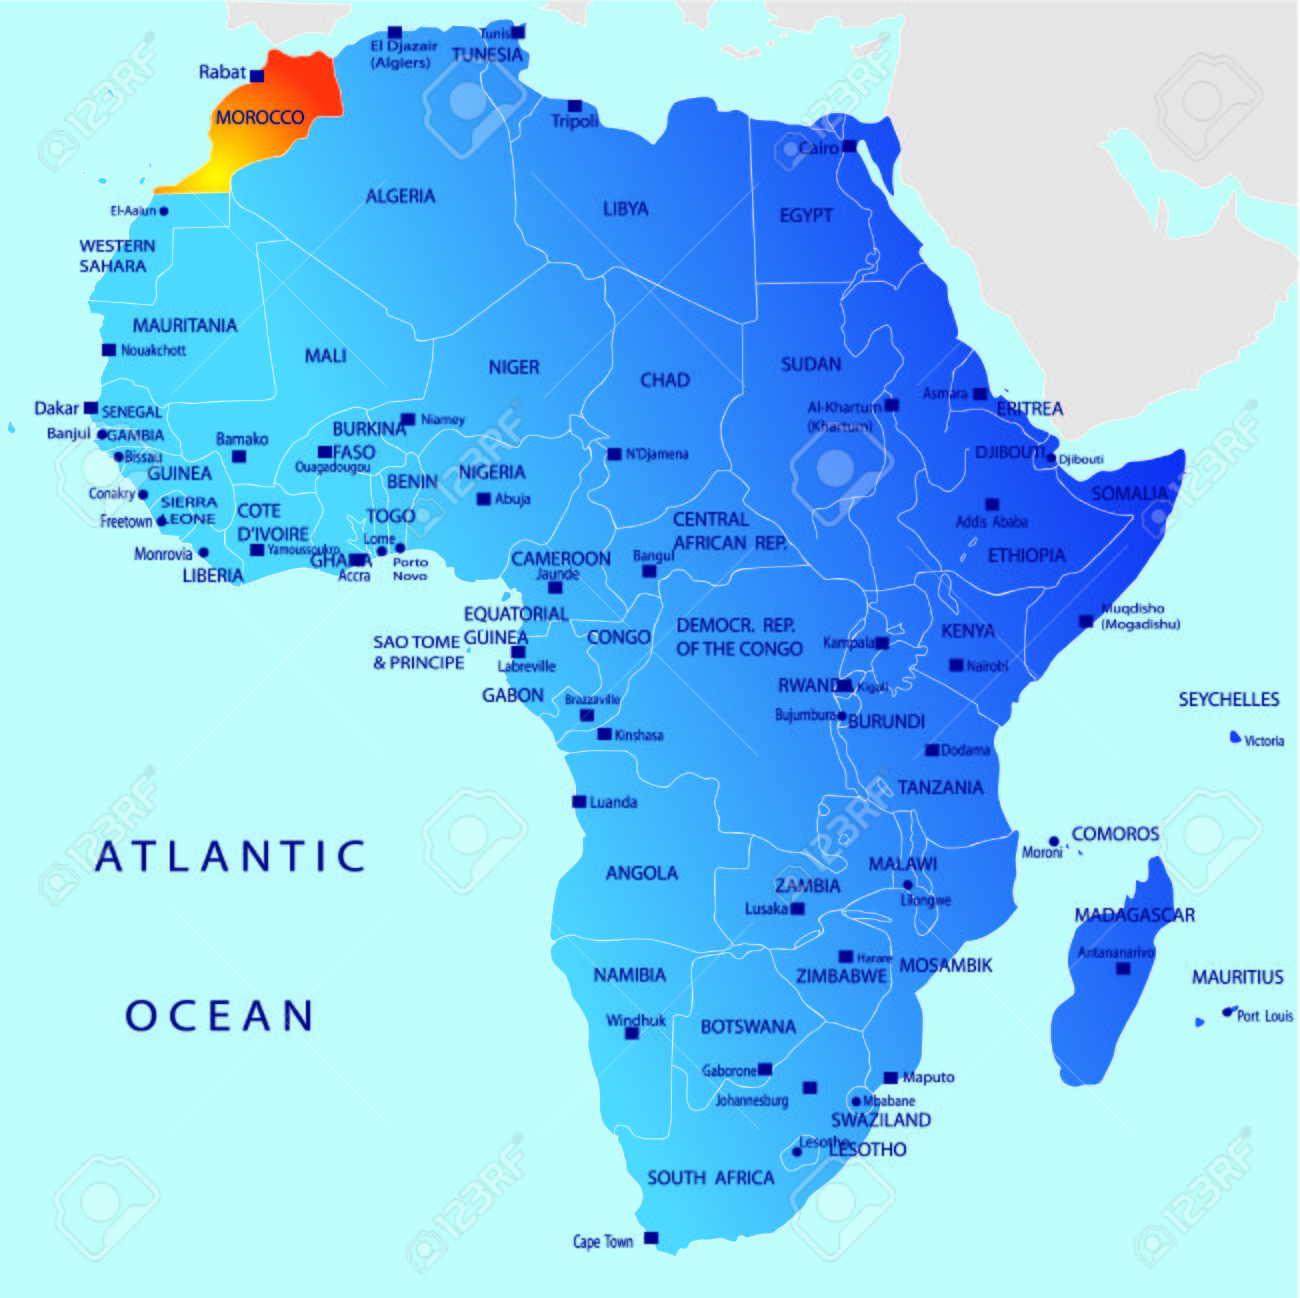 Morocco Map Of Africa.Political Map Of Africa Morocco